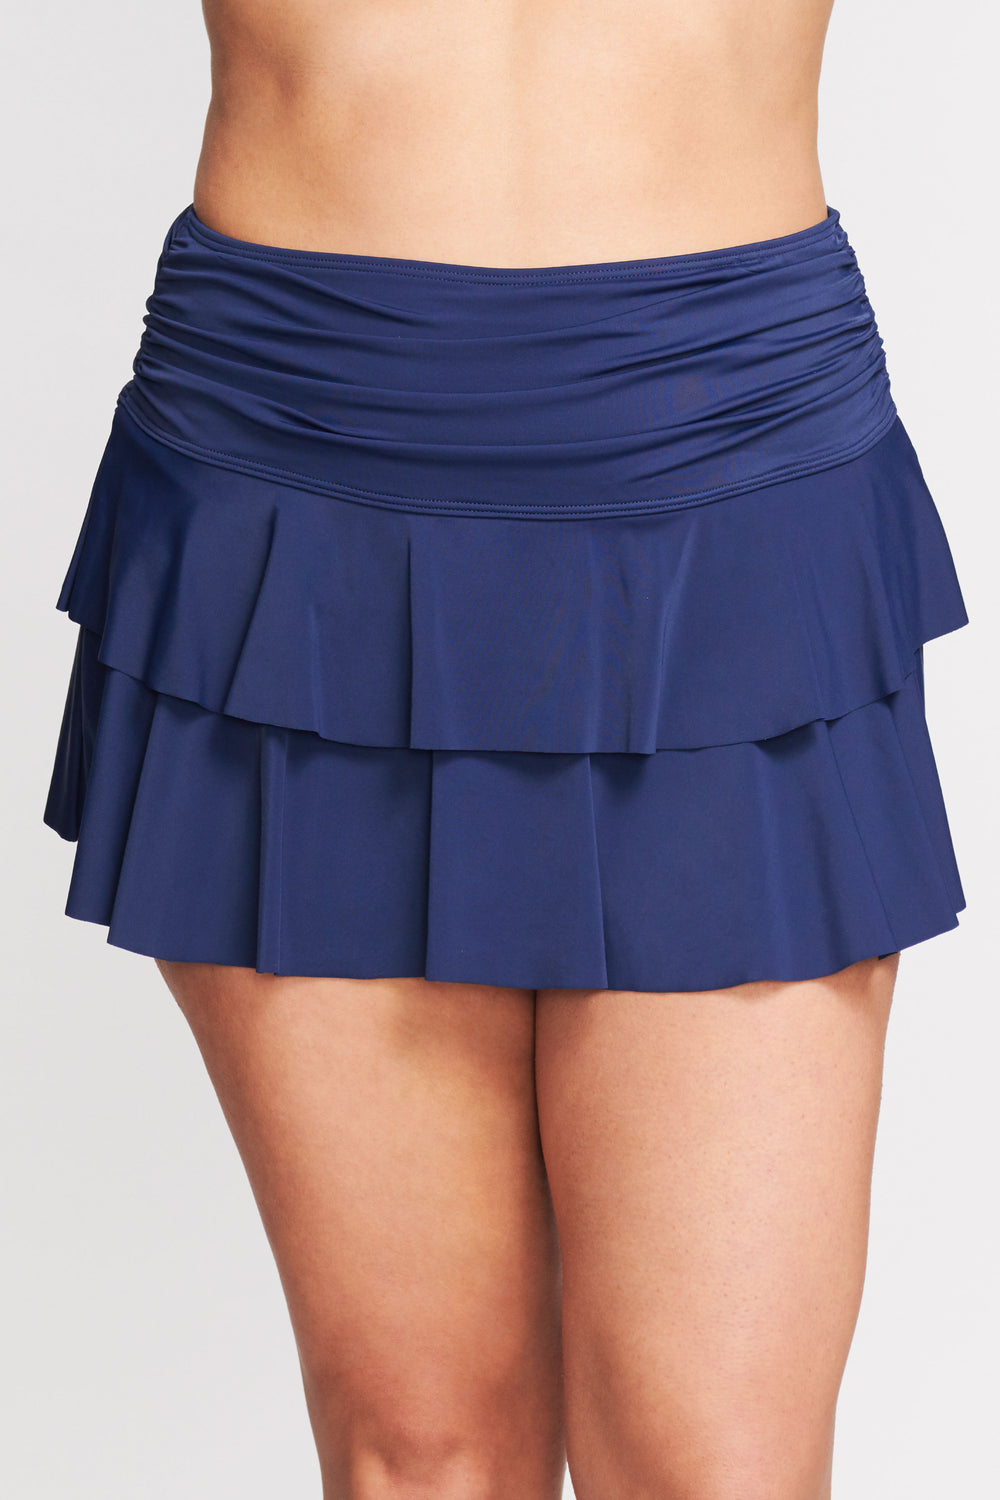 PLUS SIZE DOUBLE RUFFLE RUCHED SWIM SKIRT IN SOLID NAVY BY MAZU SWIM